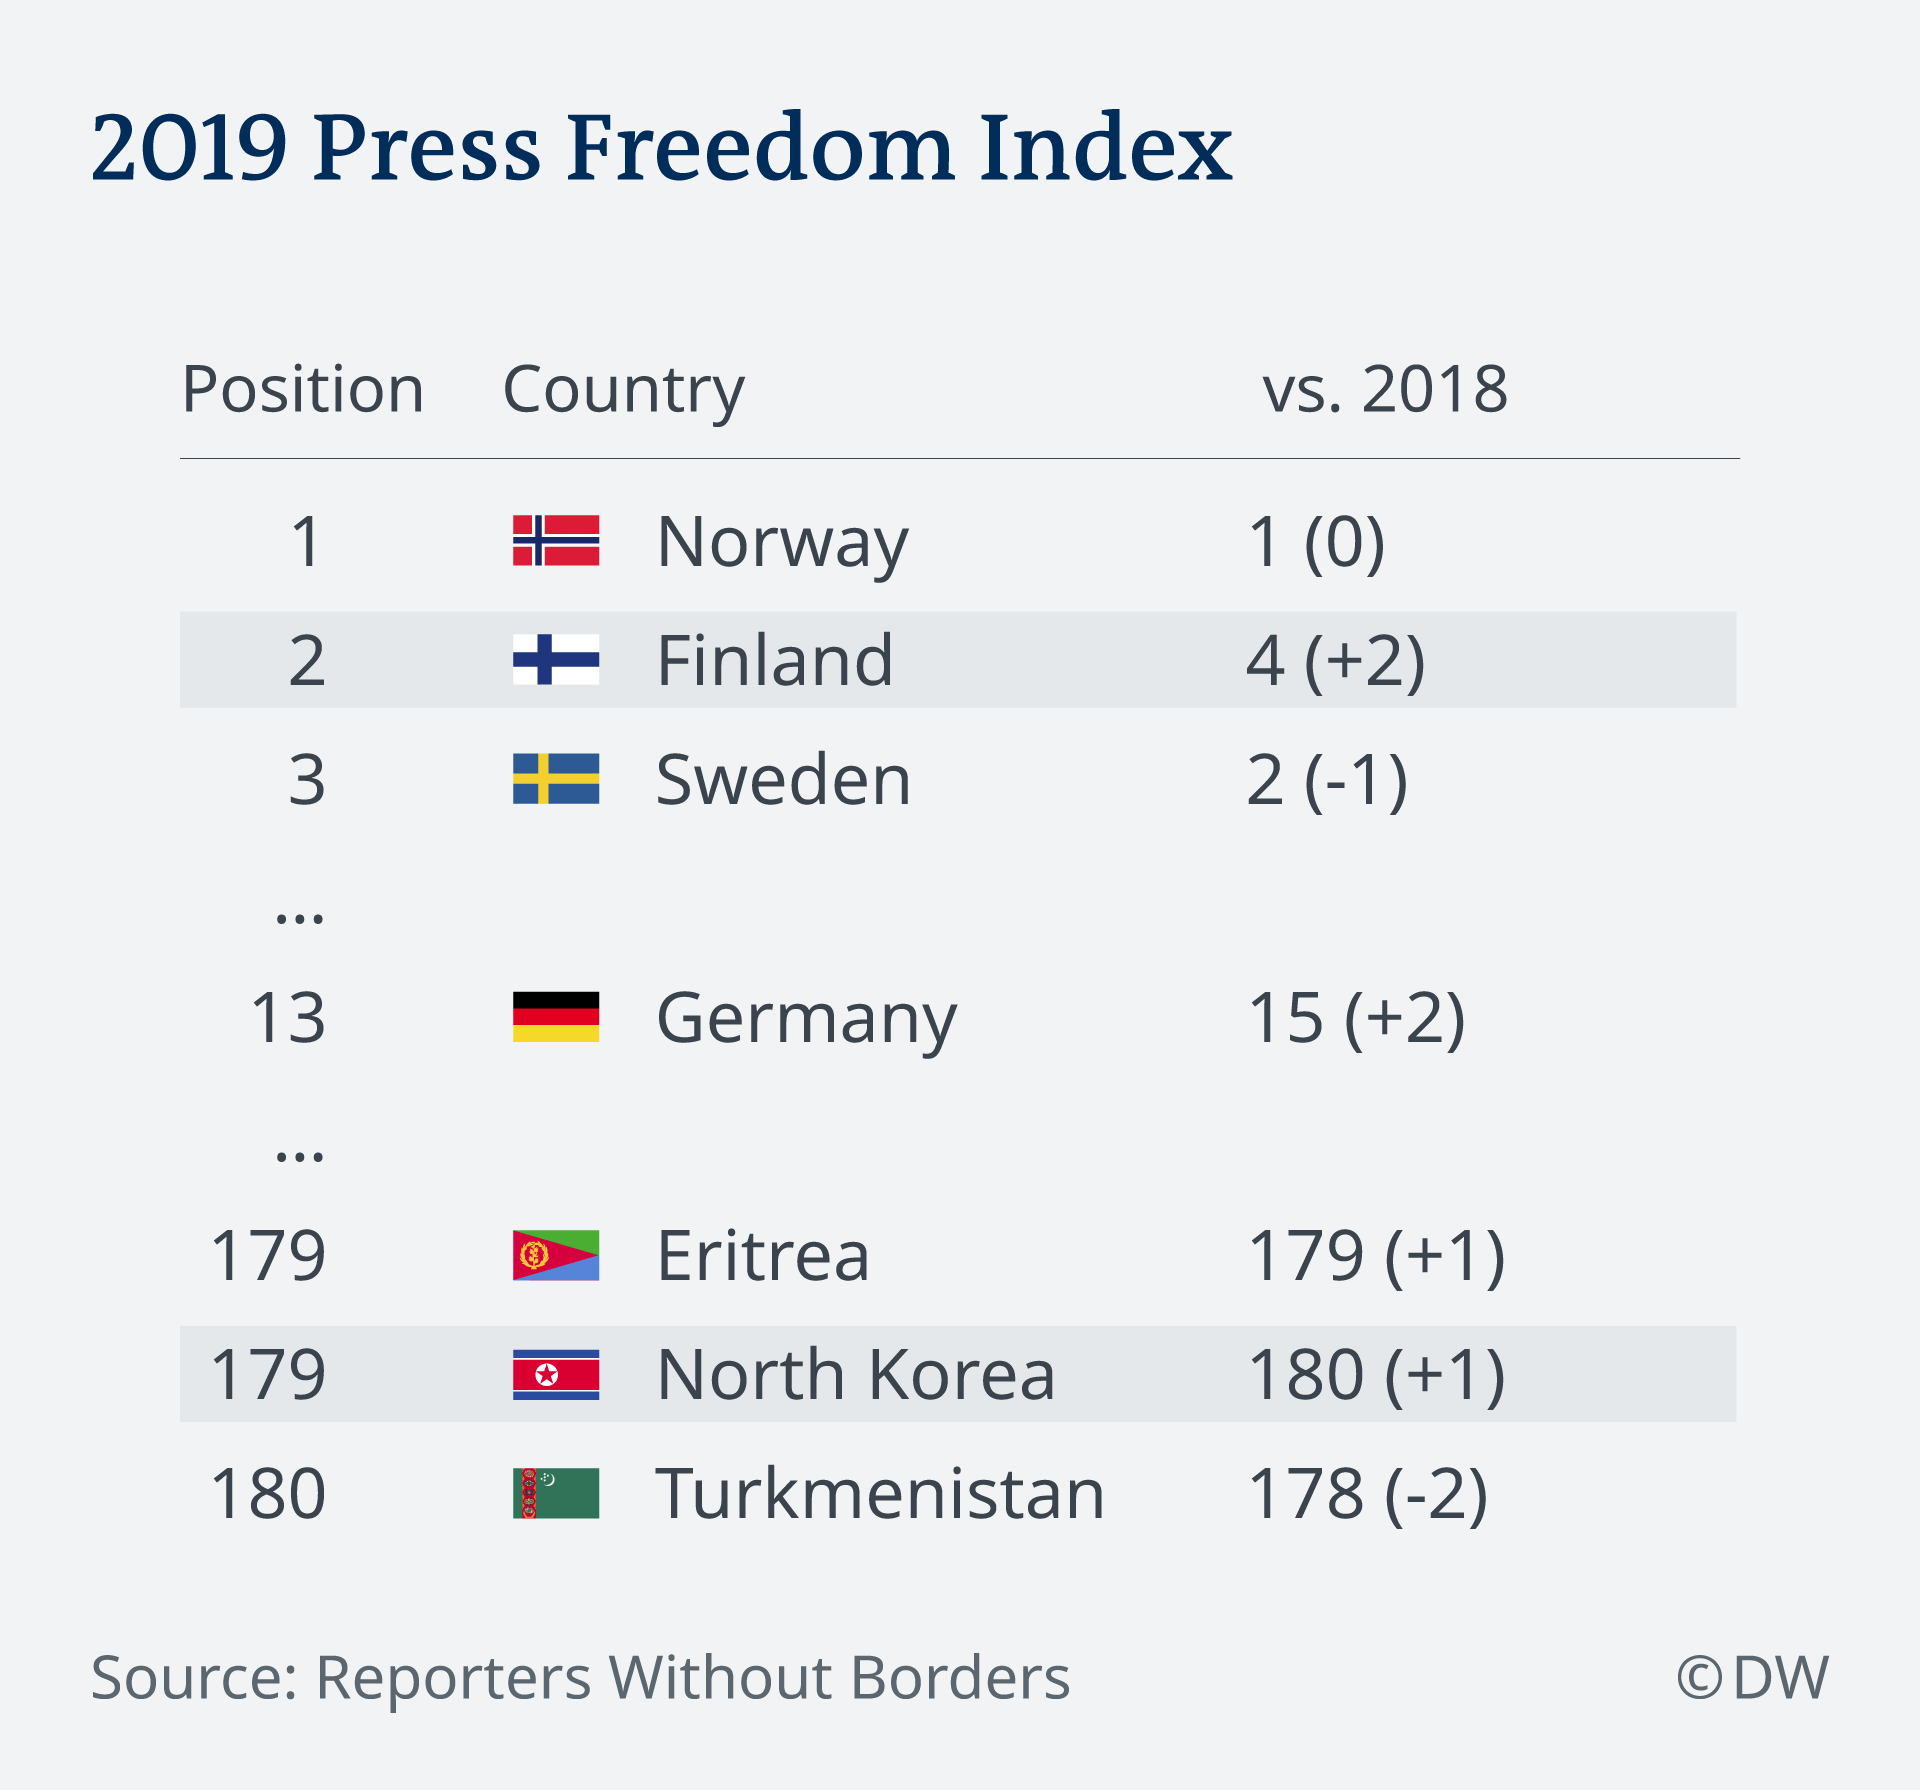 Jamaica drops two places to eighth in 2019 press freedom ranking